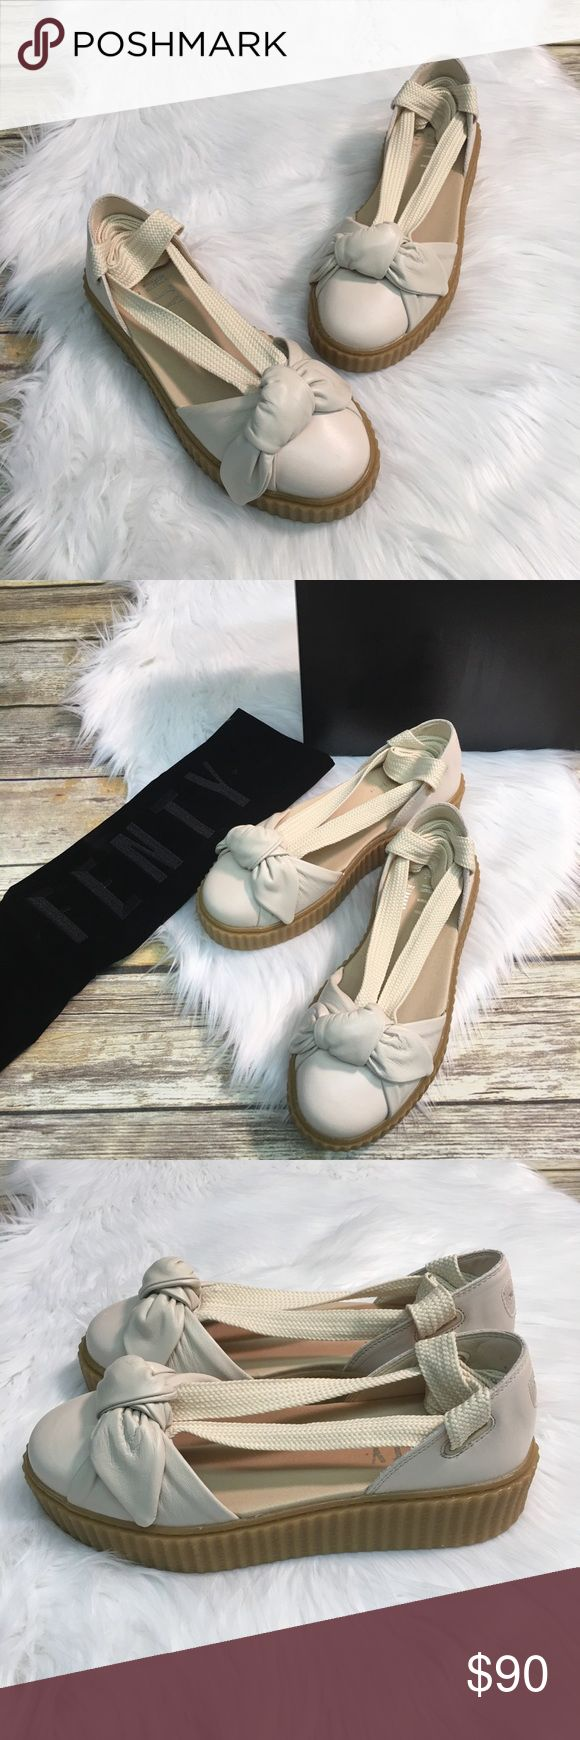 Puma Fenty Bow Lace Up Creeper Sandal Puma Fenty Bow Creeper Sandal in Oatmeal color. Lace up around ankle. Leather shoe with rubber sole. Color is pink tint - oatmeal.   Brand new in box. Also comes with Velvet Fenty dust bag.  Super cute, love these shoes! Puma Shoes Platforms